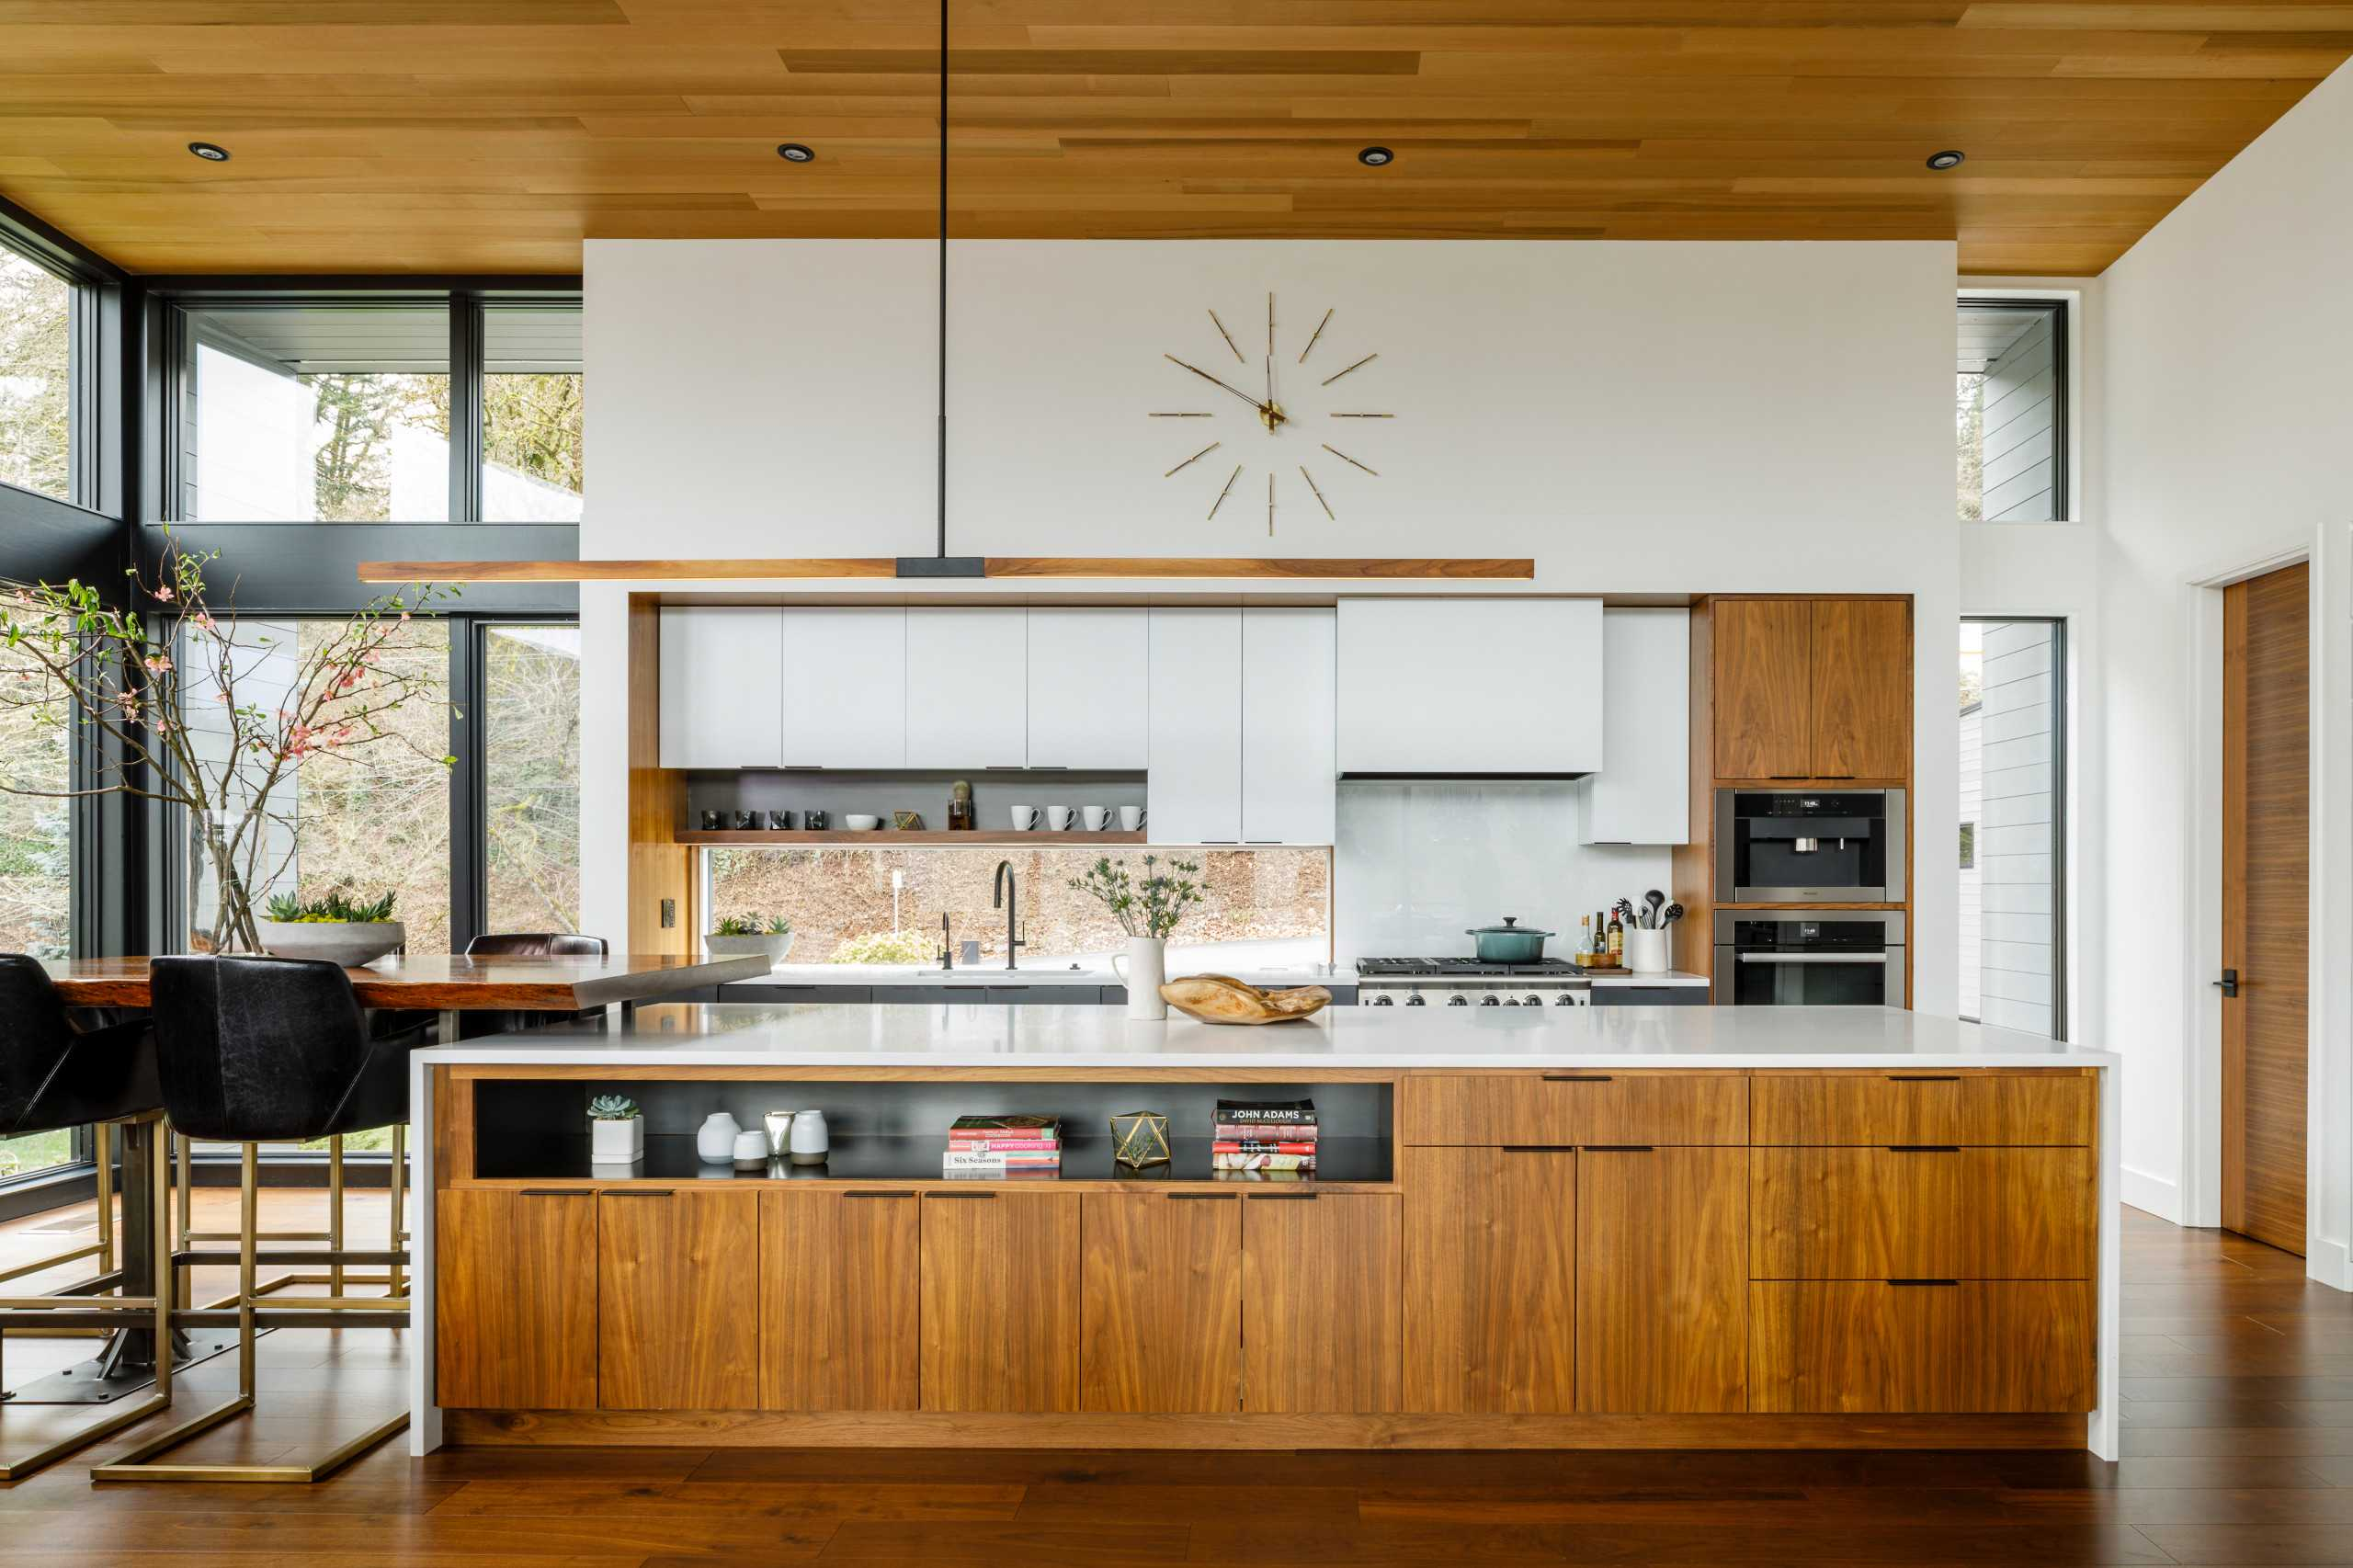 20 Mind blowing Mid Century Modern Kitchen Designs You Will Obsess Over